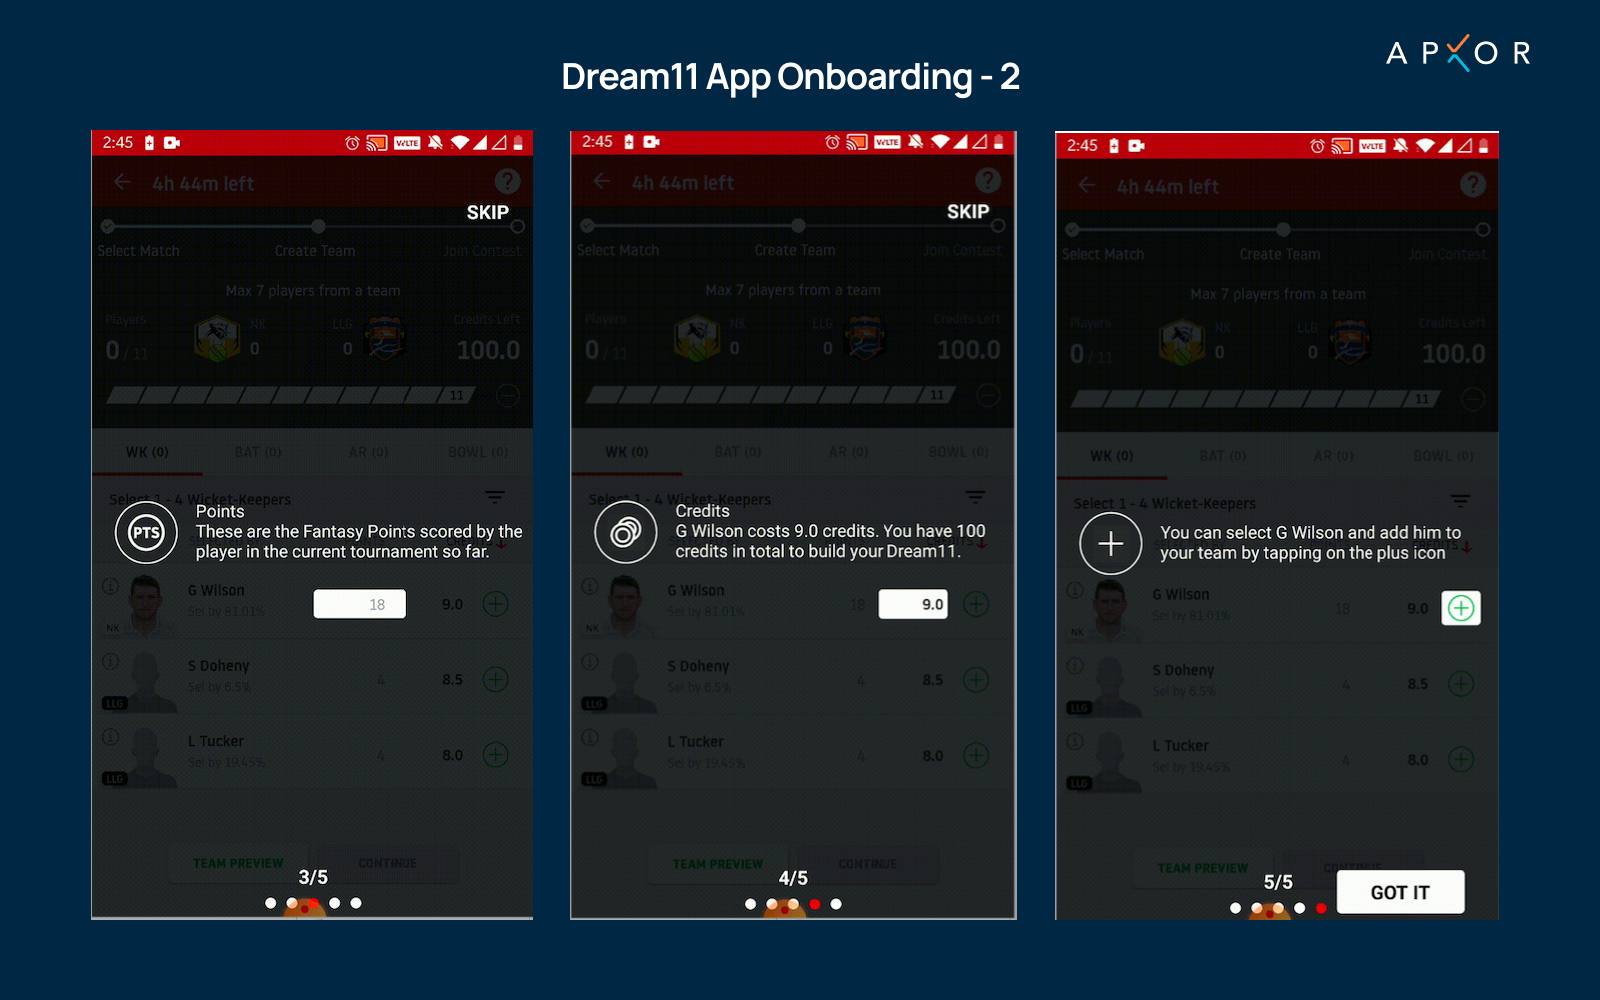 Dream11 App Onboarding Images Apxor -2